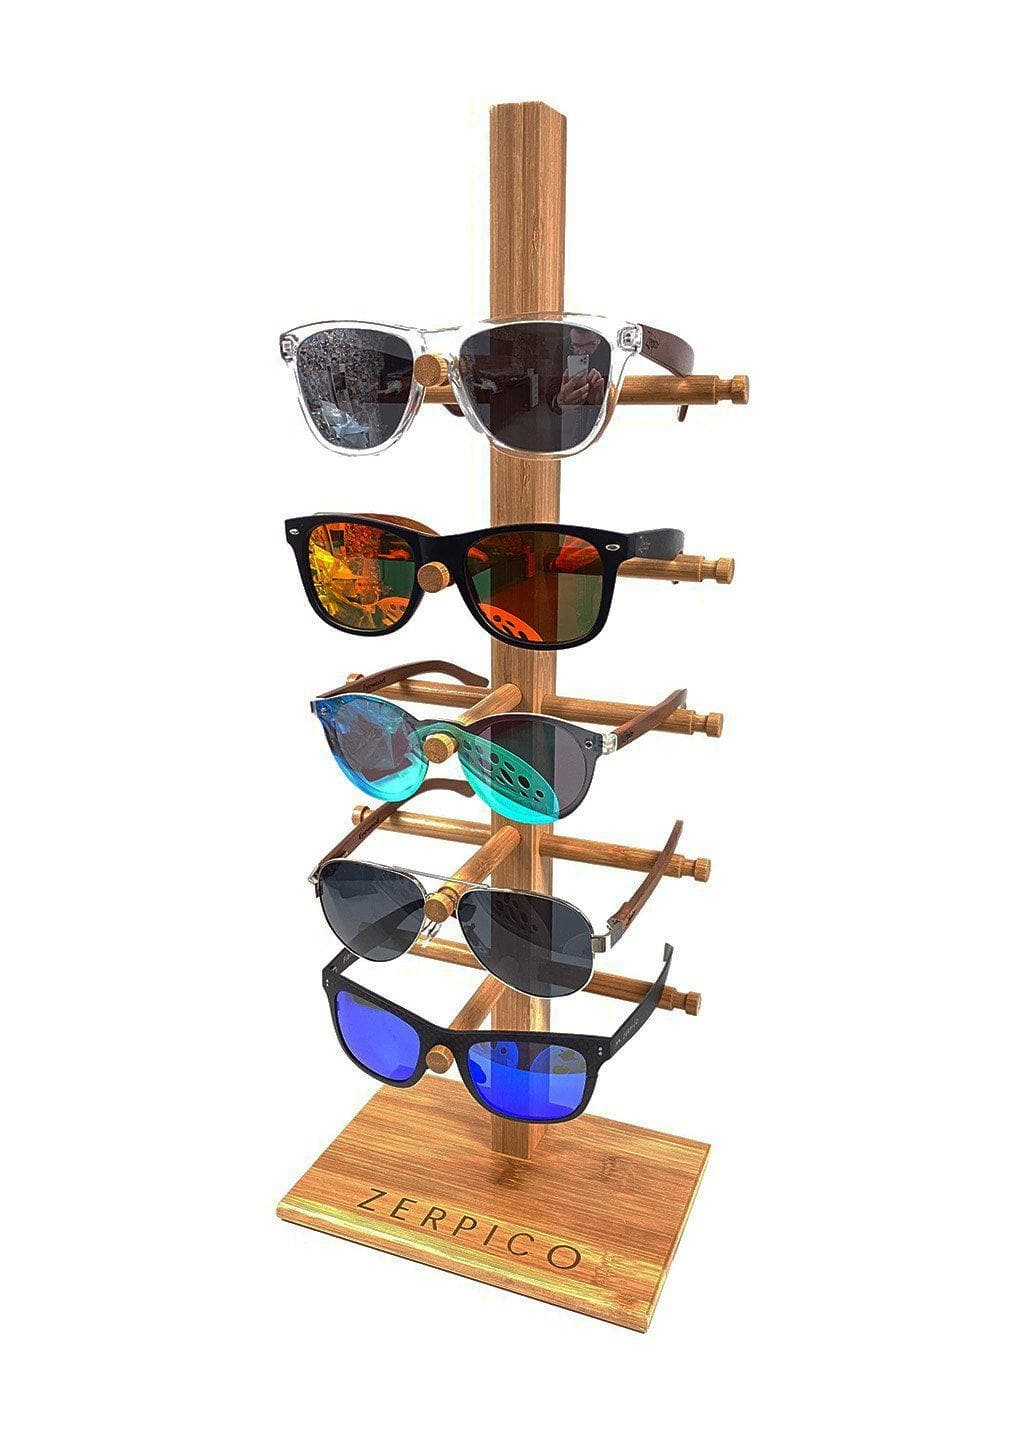 Smaller version of our wooden sunglasses stand. This with sunglasses on it.